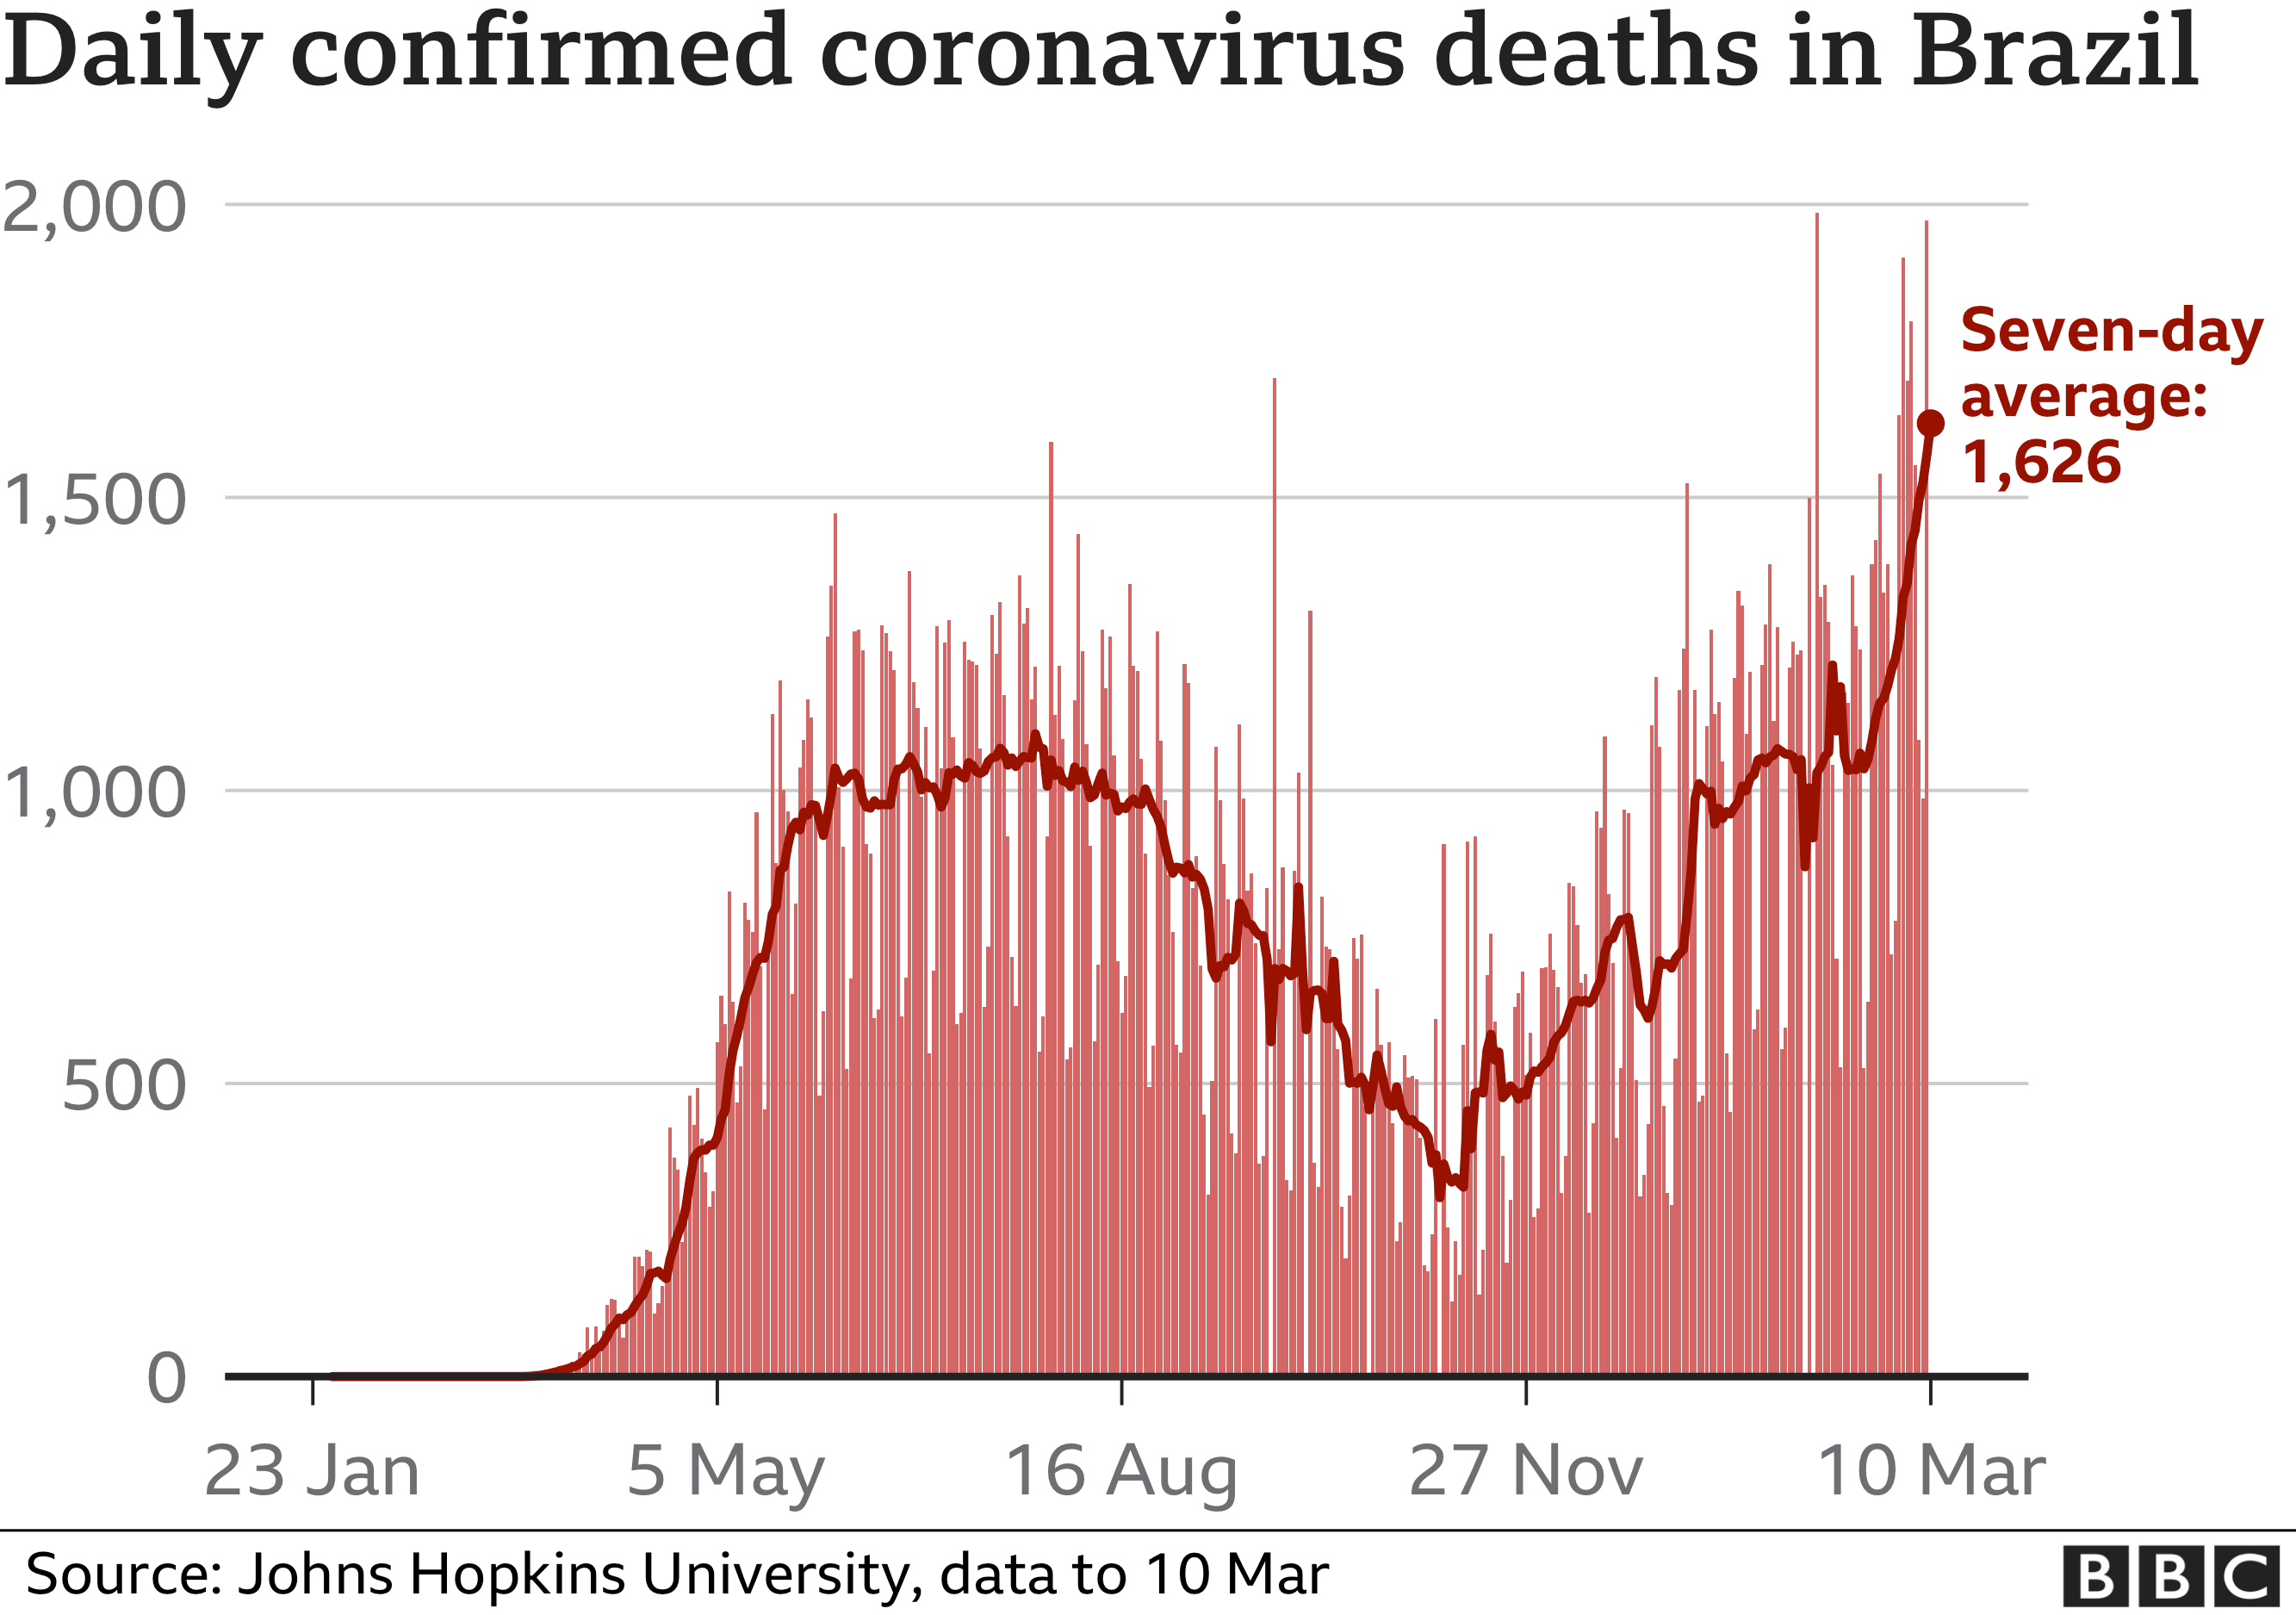 Chart showing daily confirmed coronavirus deaths in Brazil